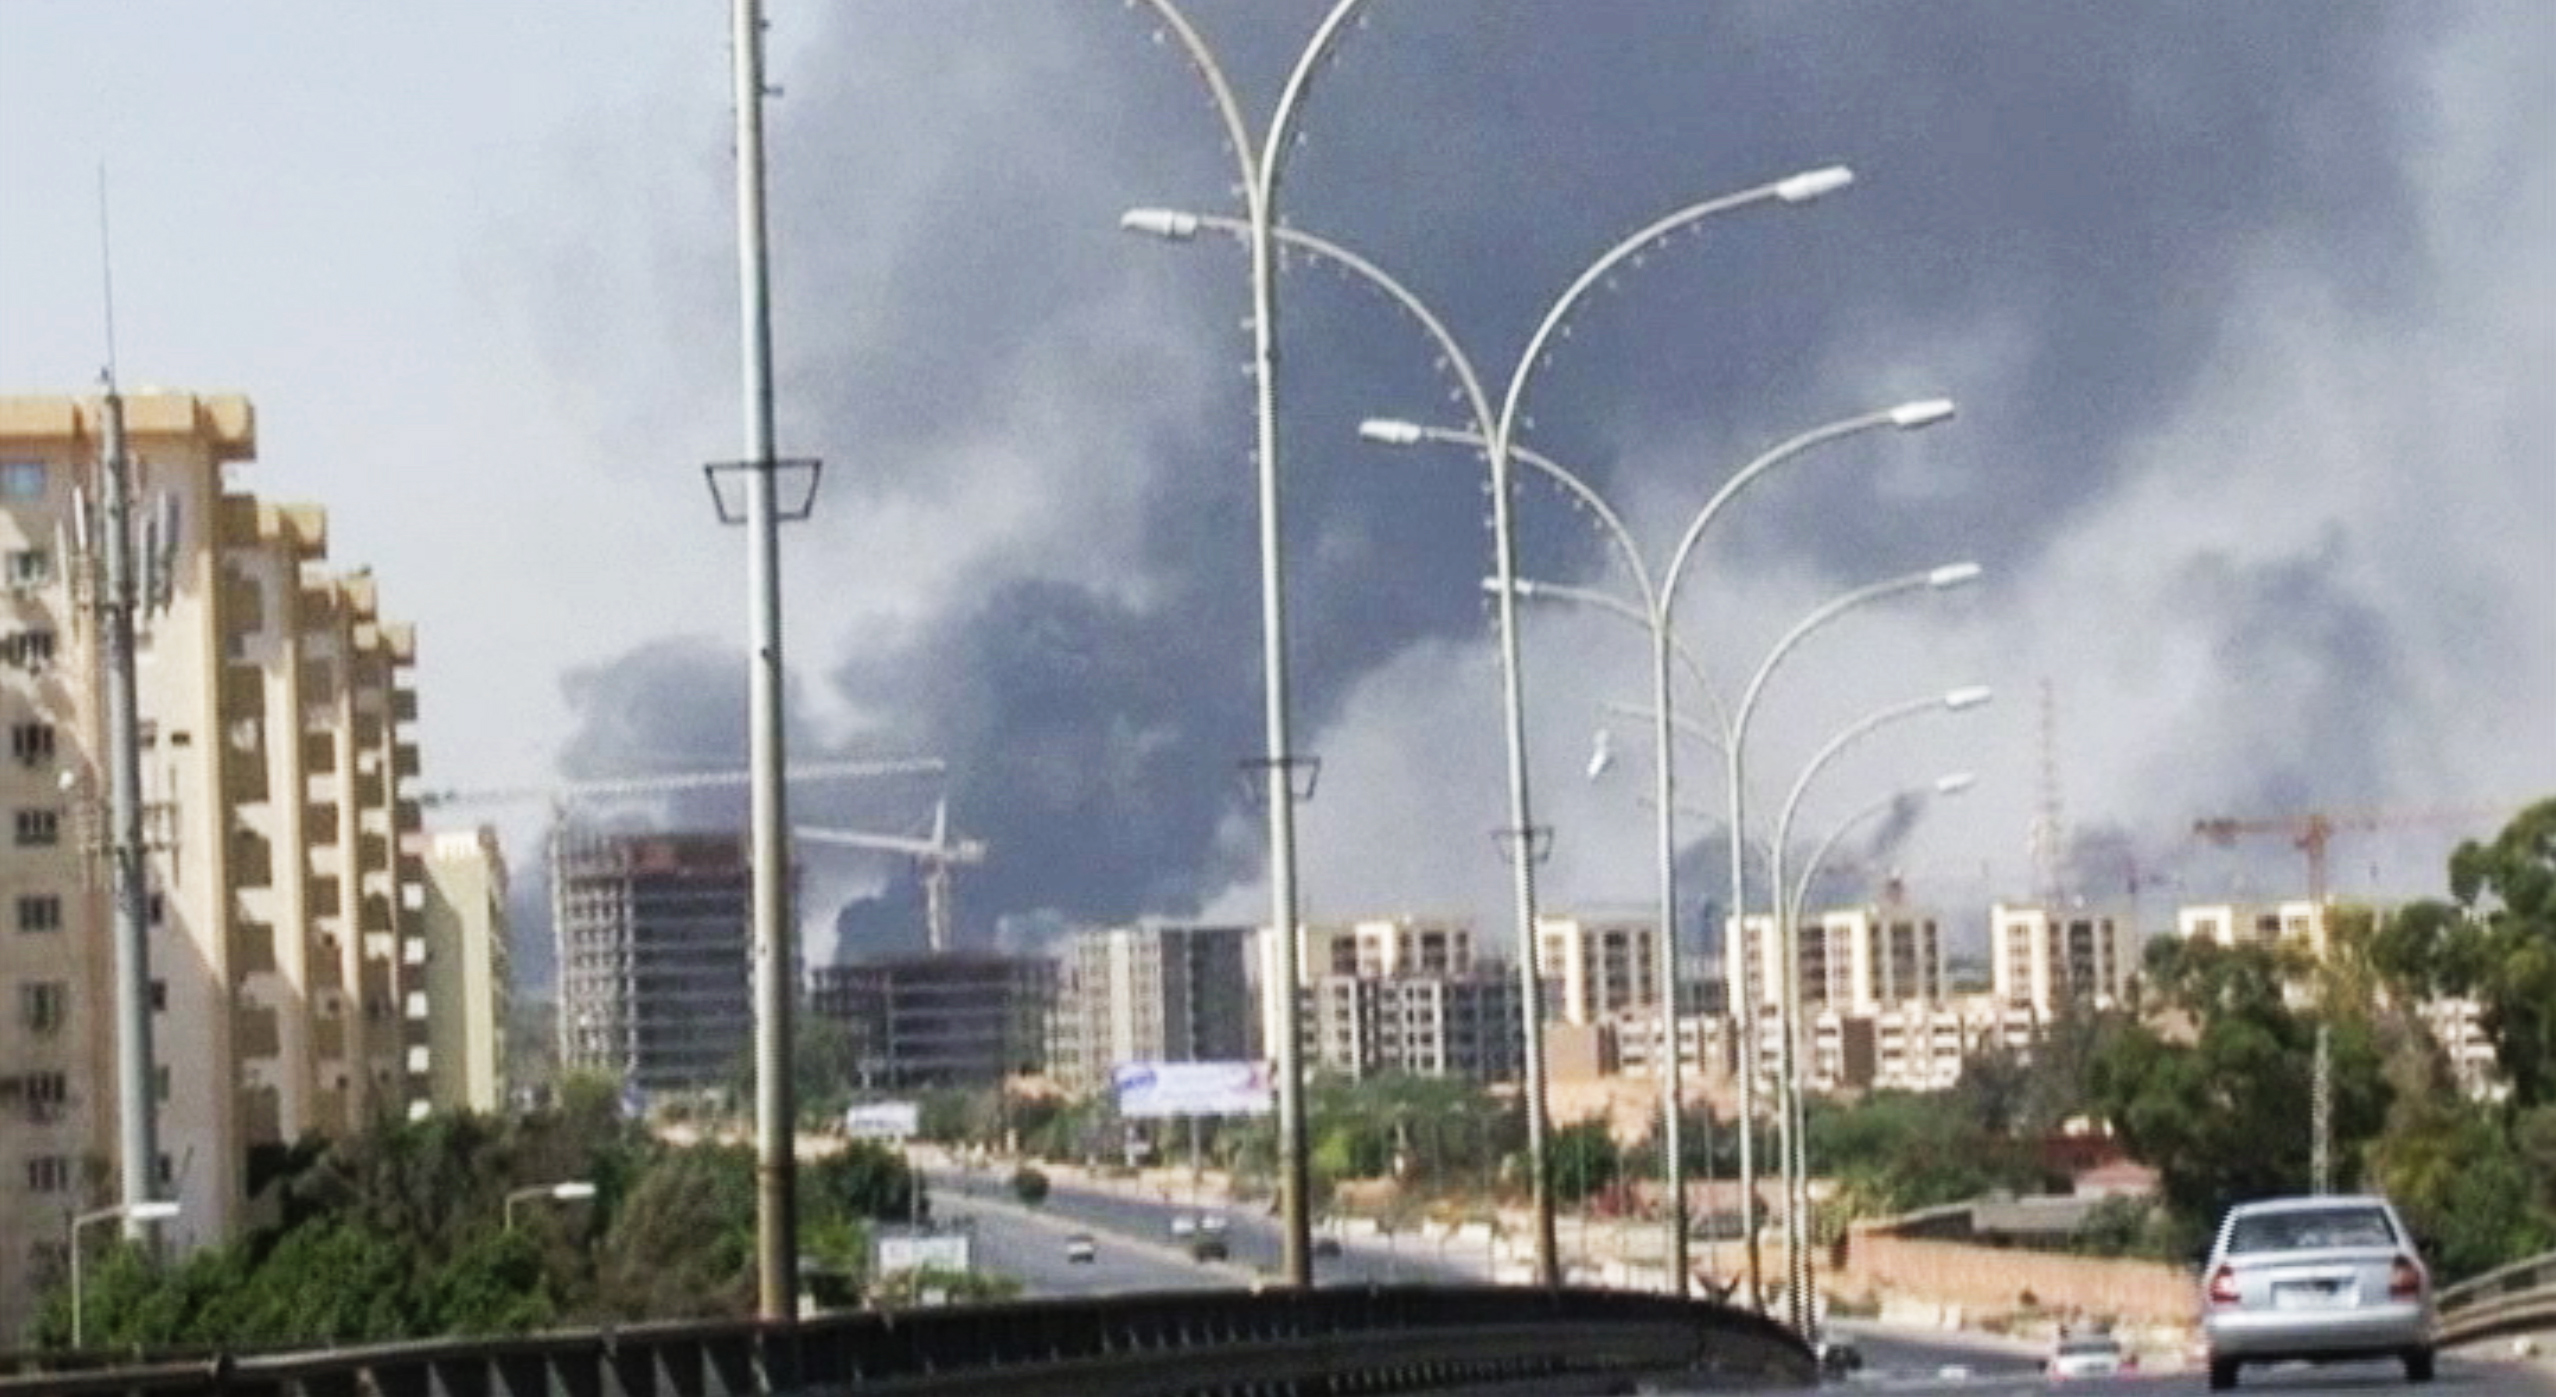 In this image made from video by the Associated Press, smoke rises from the direction of Tripoli International Airport, in the capital of Libya, on July 13, 2014